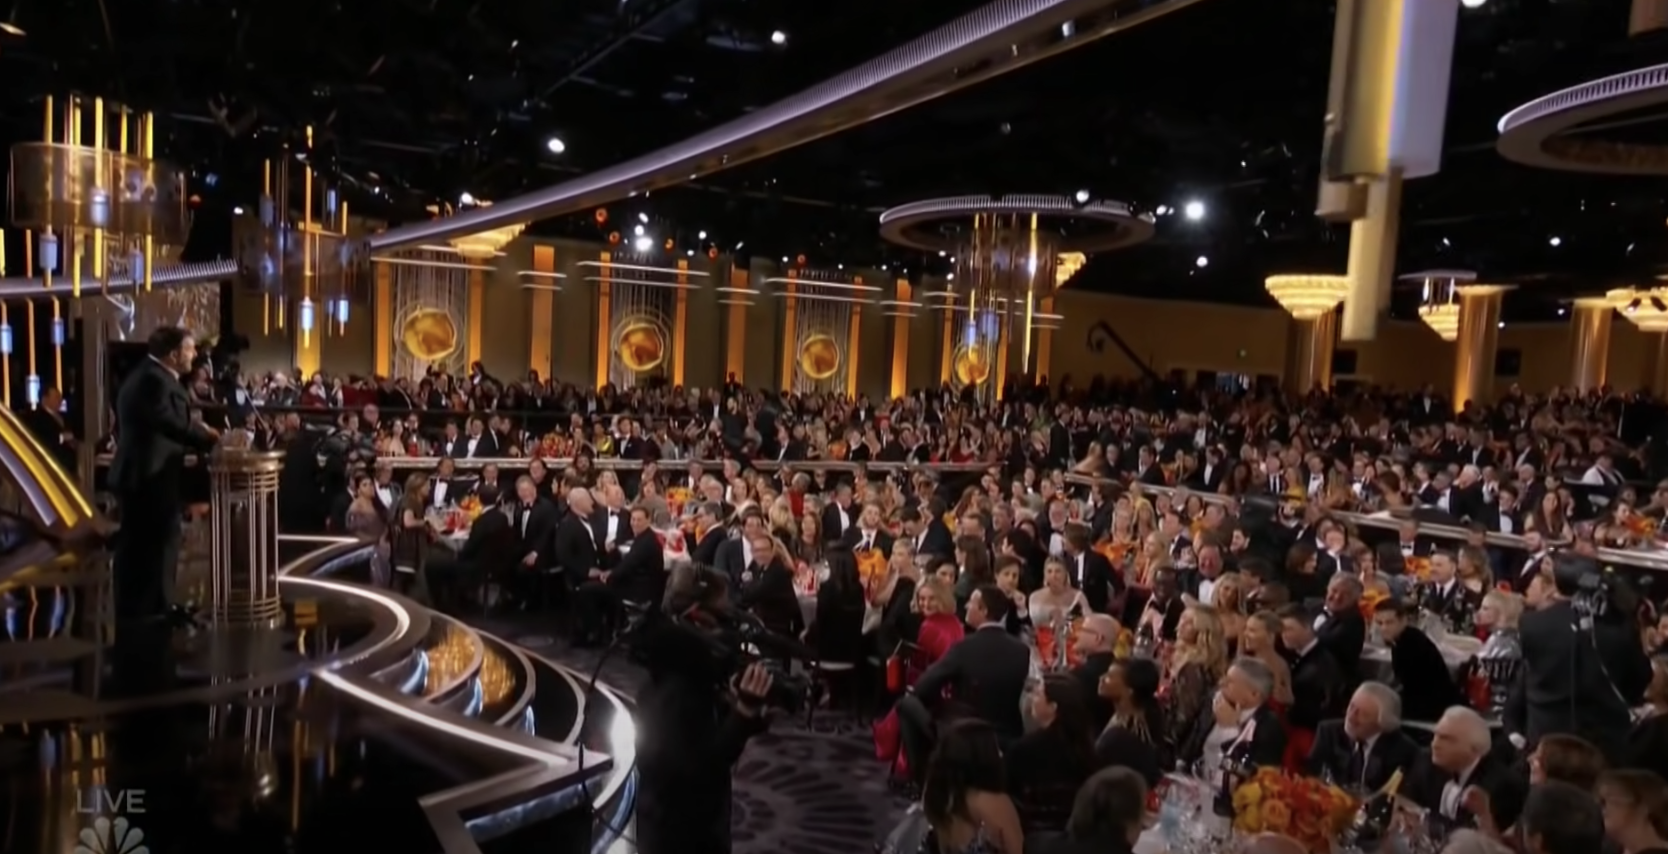 The awards ceremony is filled with celebrities sitting at tables